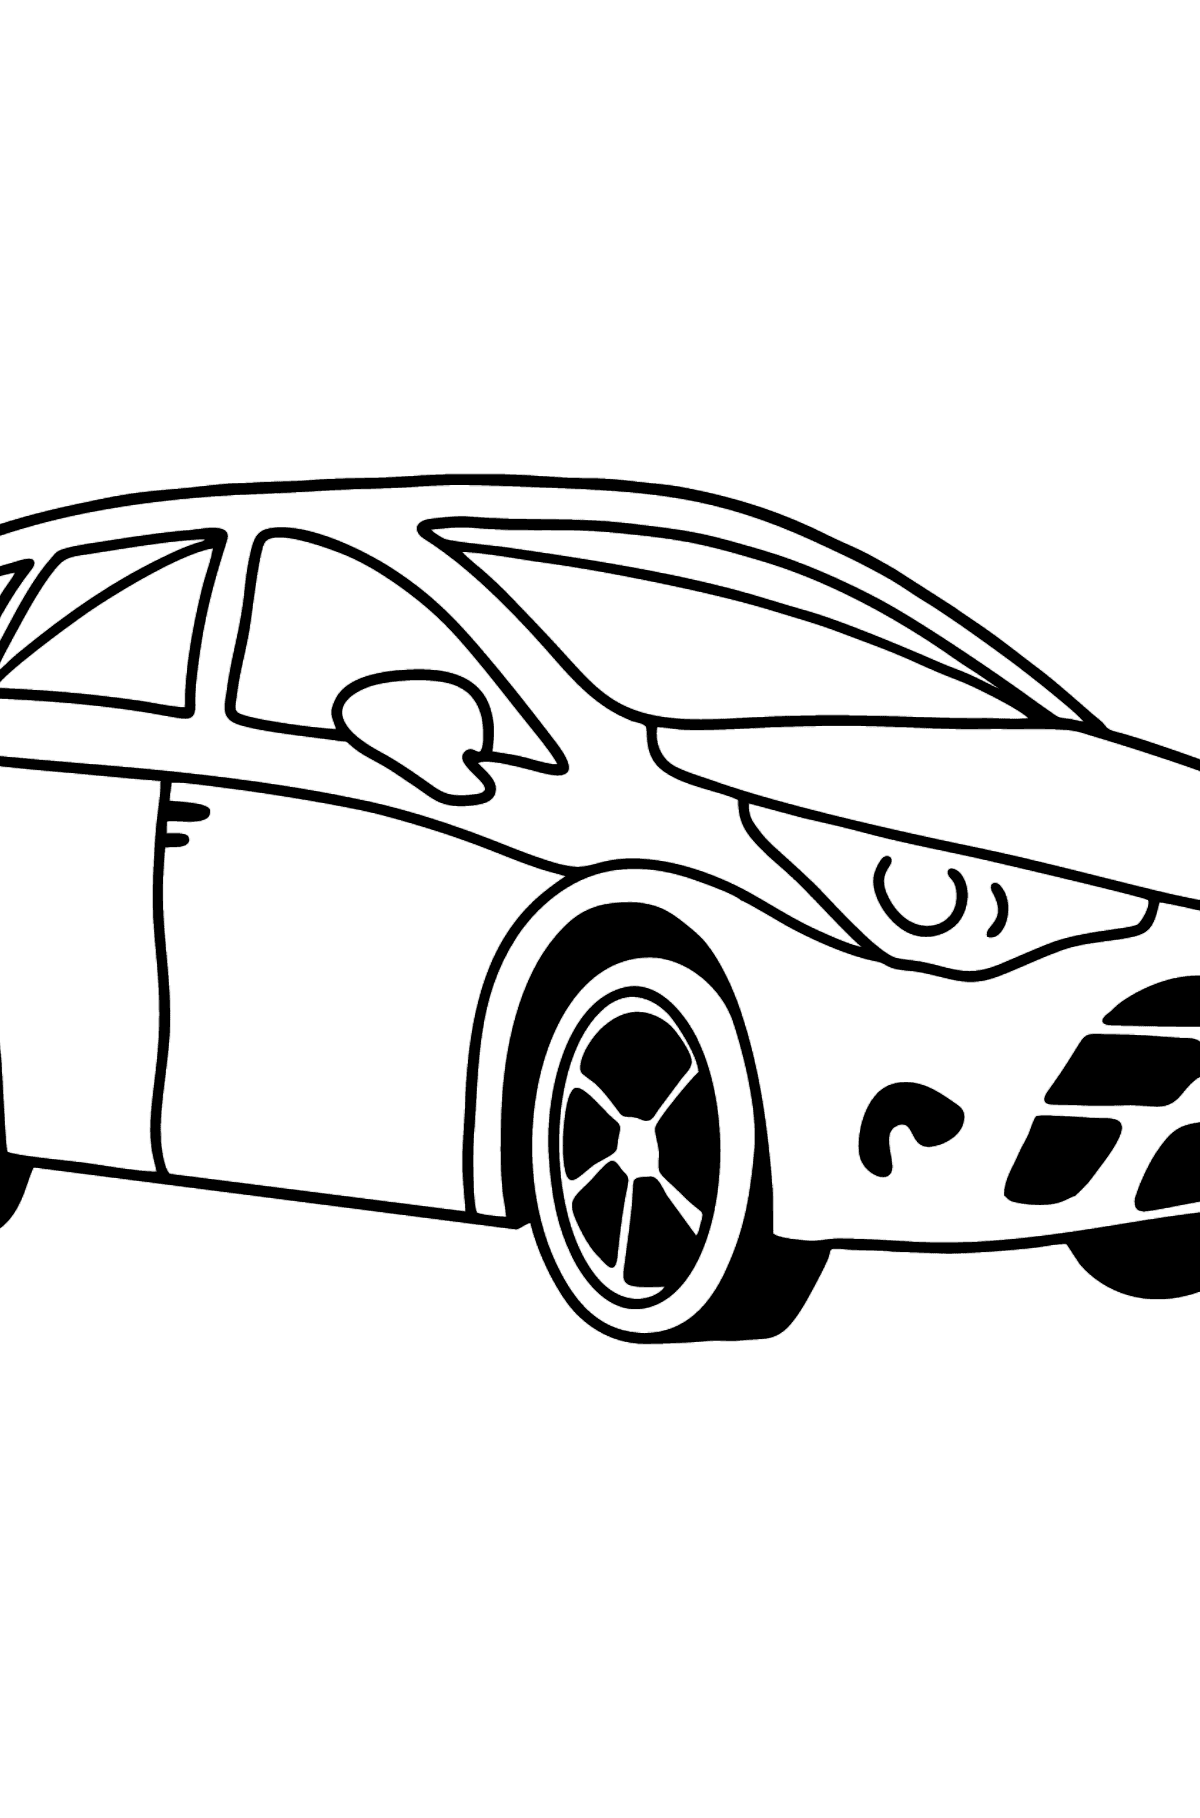 Toyota Avensis Car coloring page - Coloring Pages for Kids